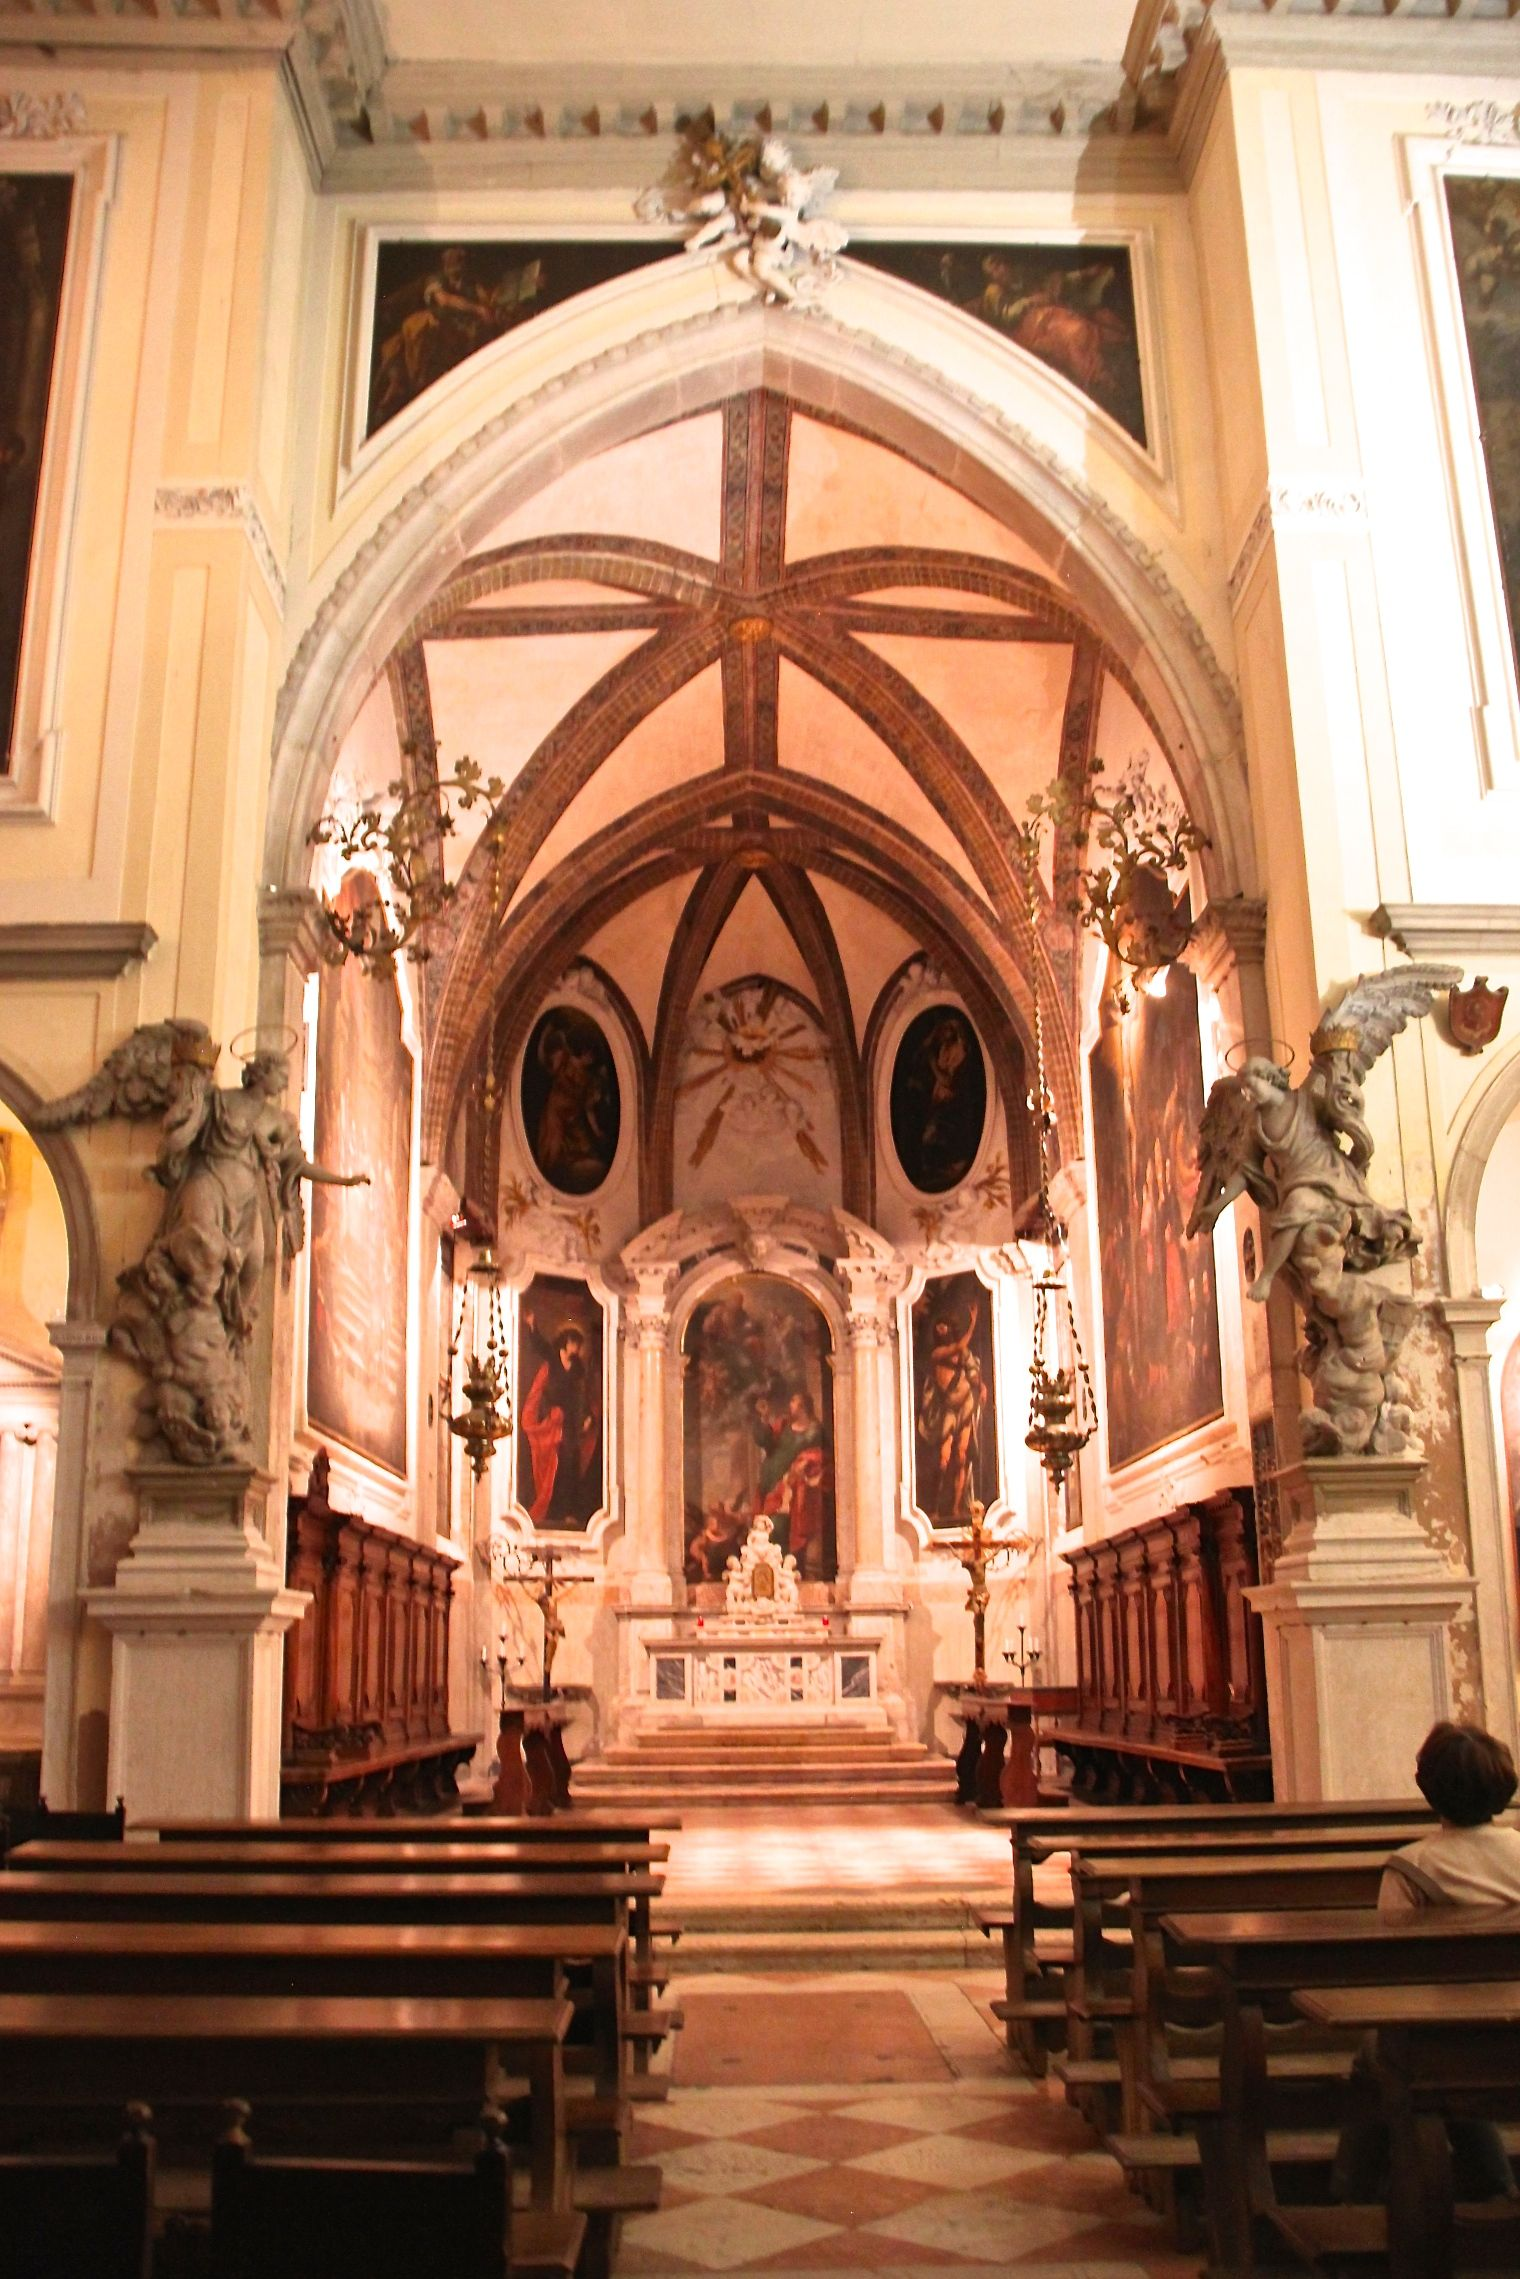 The Venice Music Project regularly play at the Church of San Giovanni Evangelista in San Polo, Venice